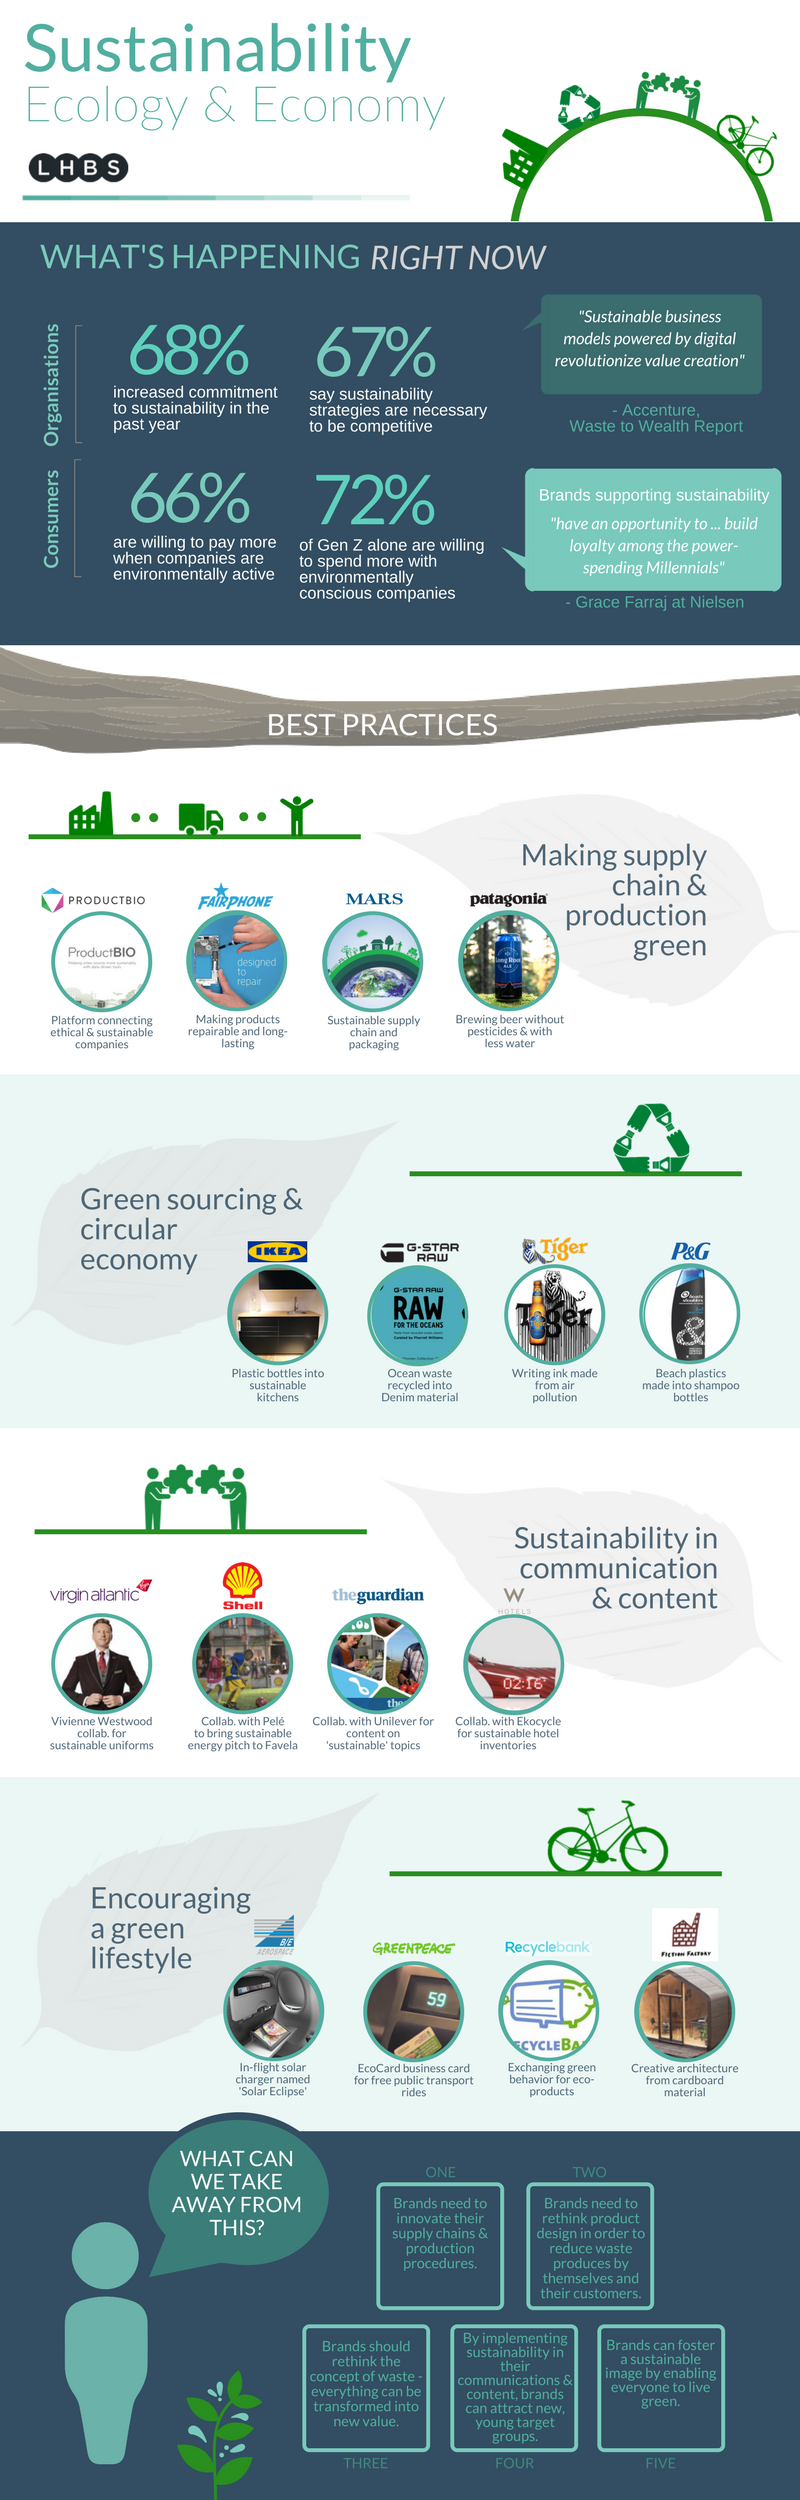 infographic-sustainability.jpg